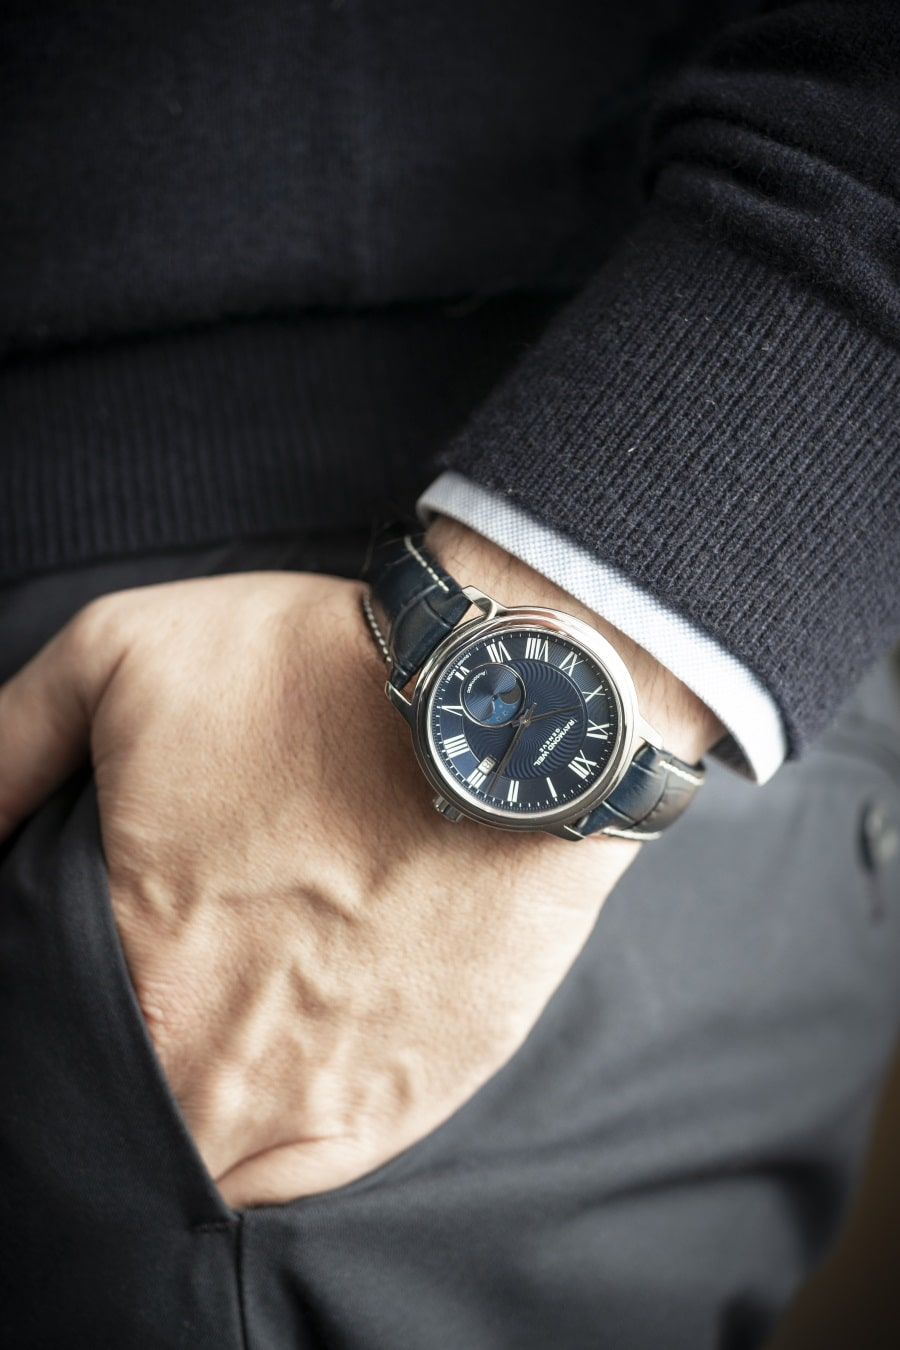 moon phase timepiece watch lifestyle